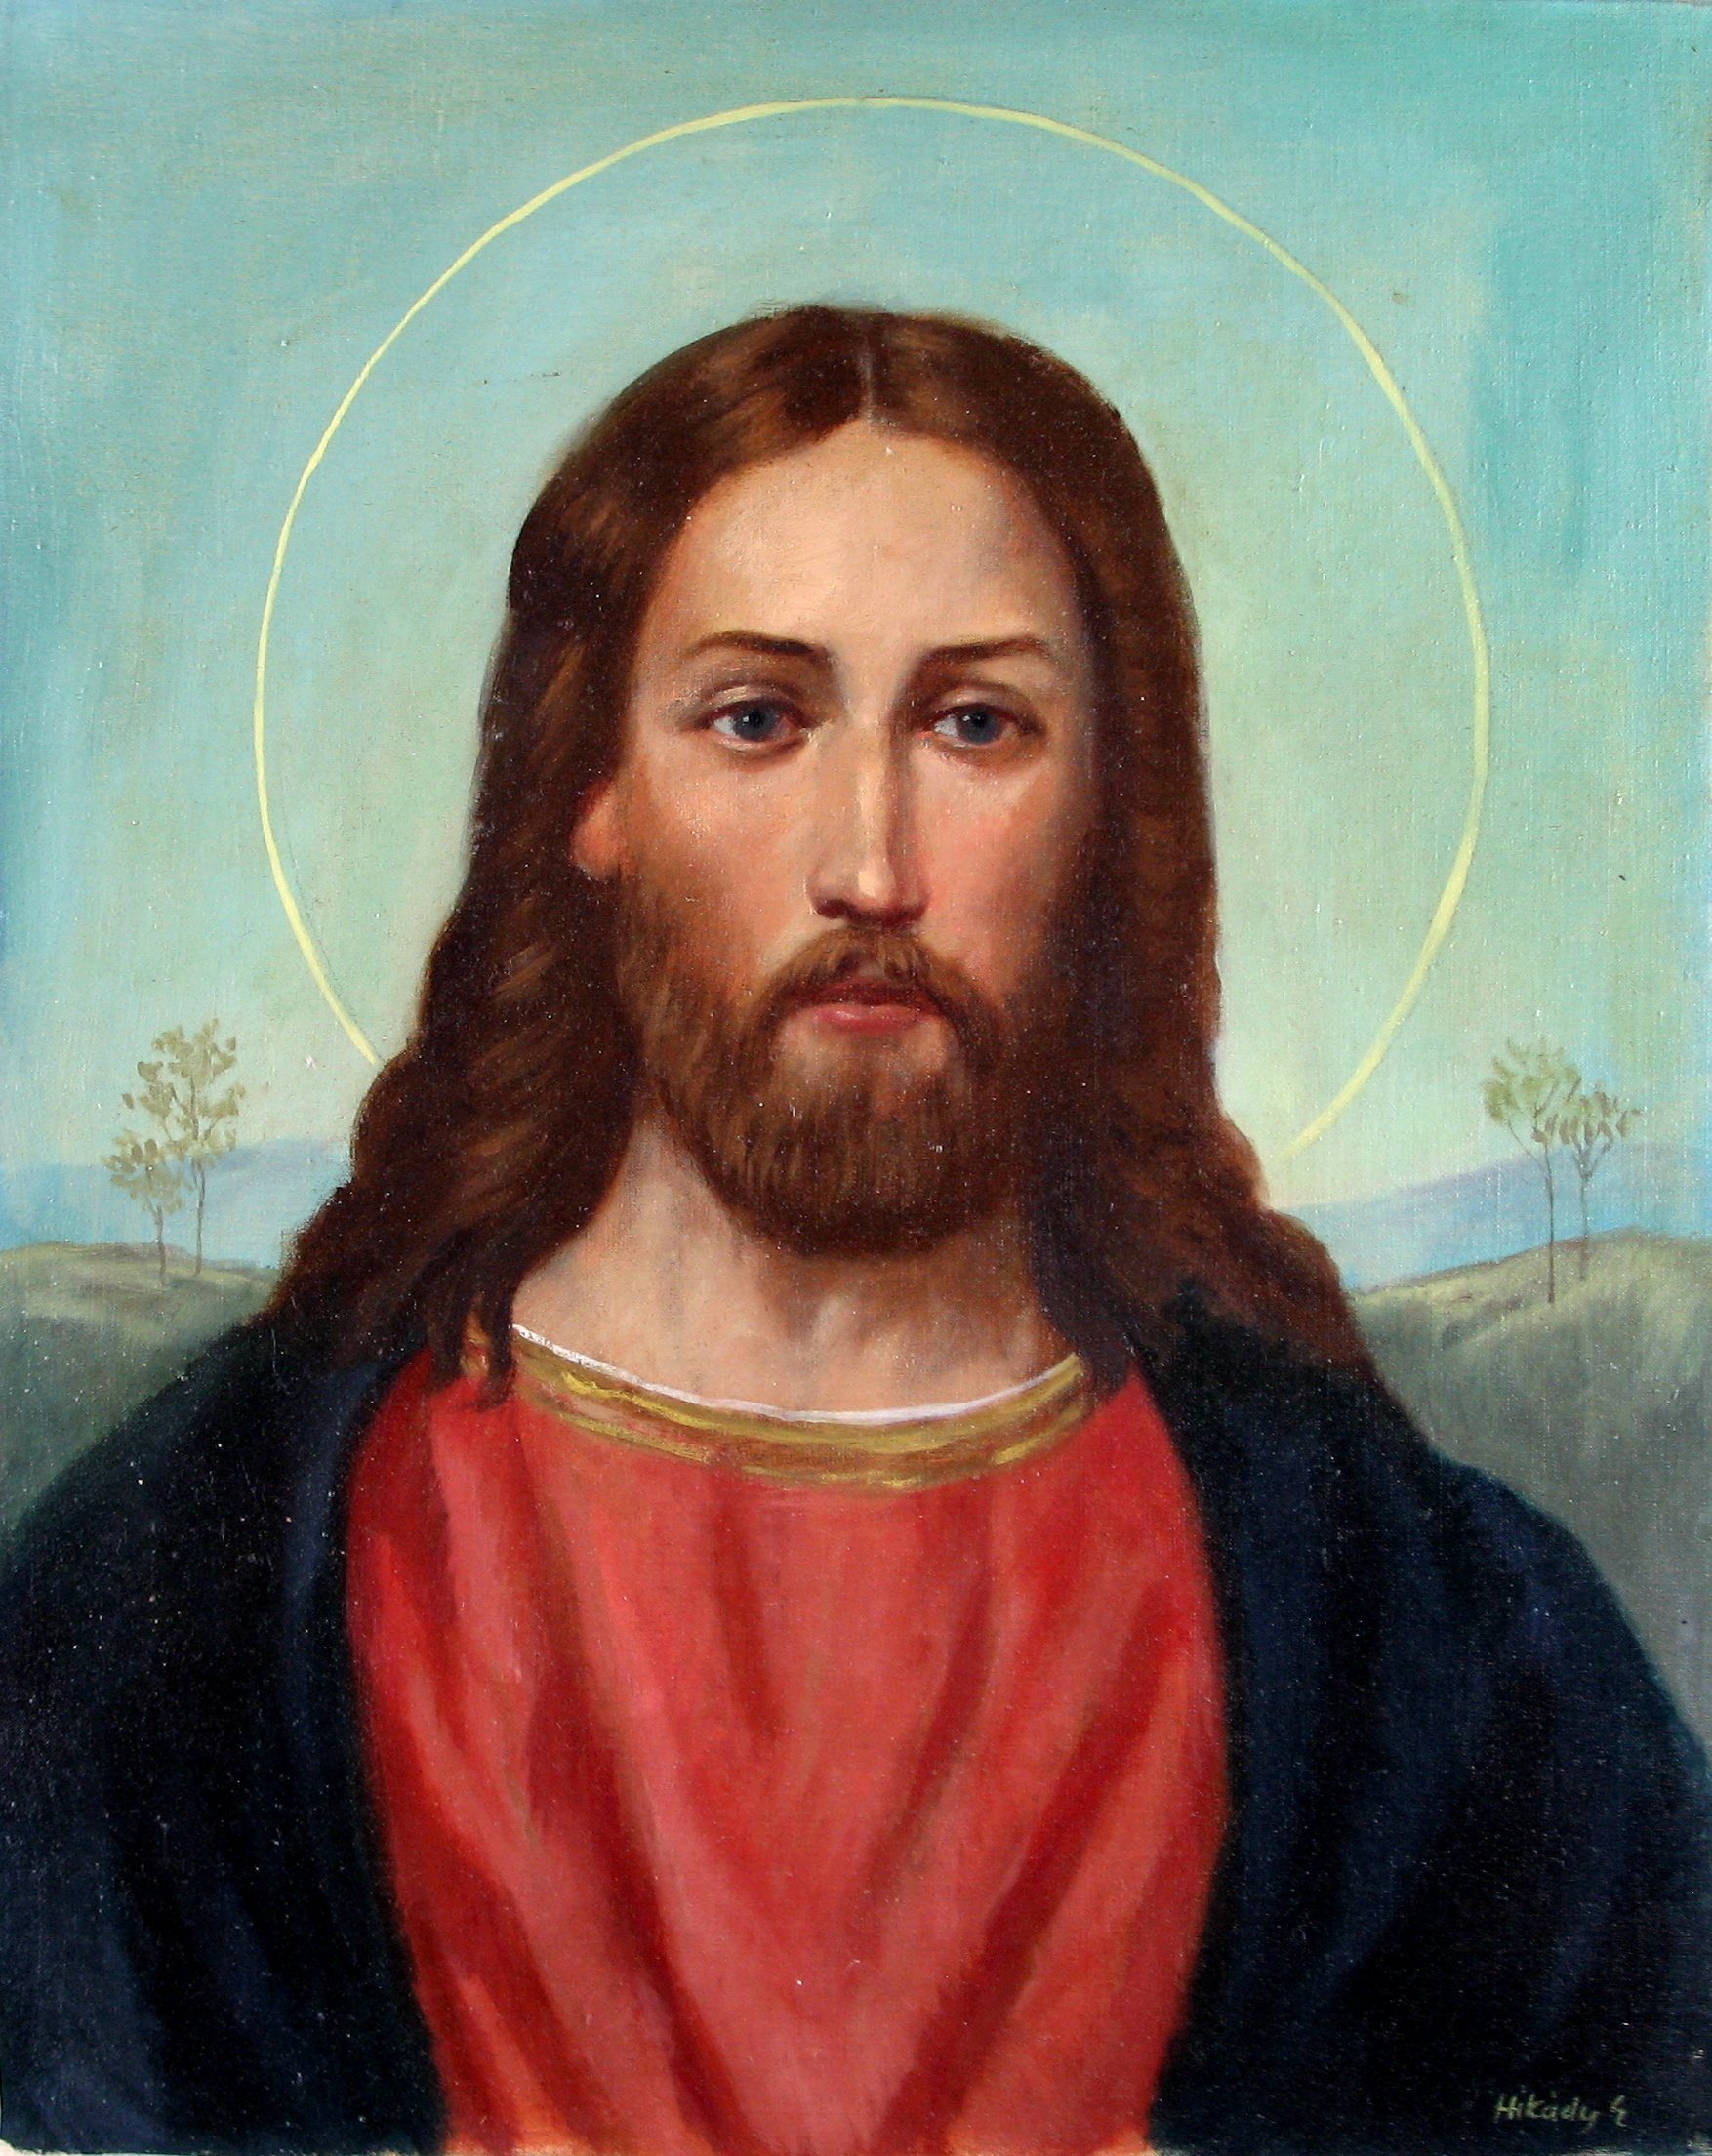 Jesus With Halo (1950-1970)